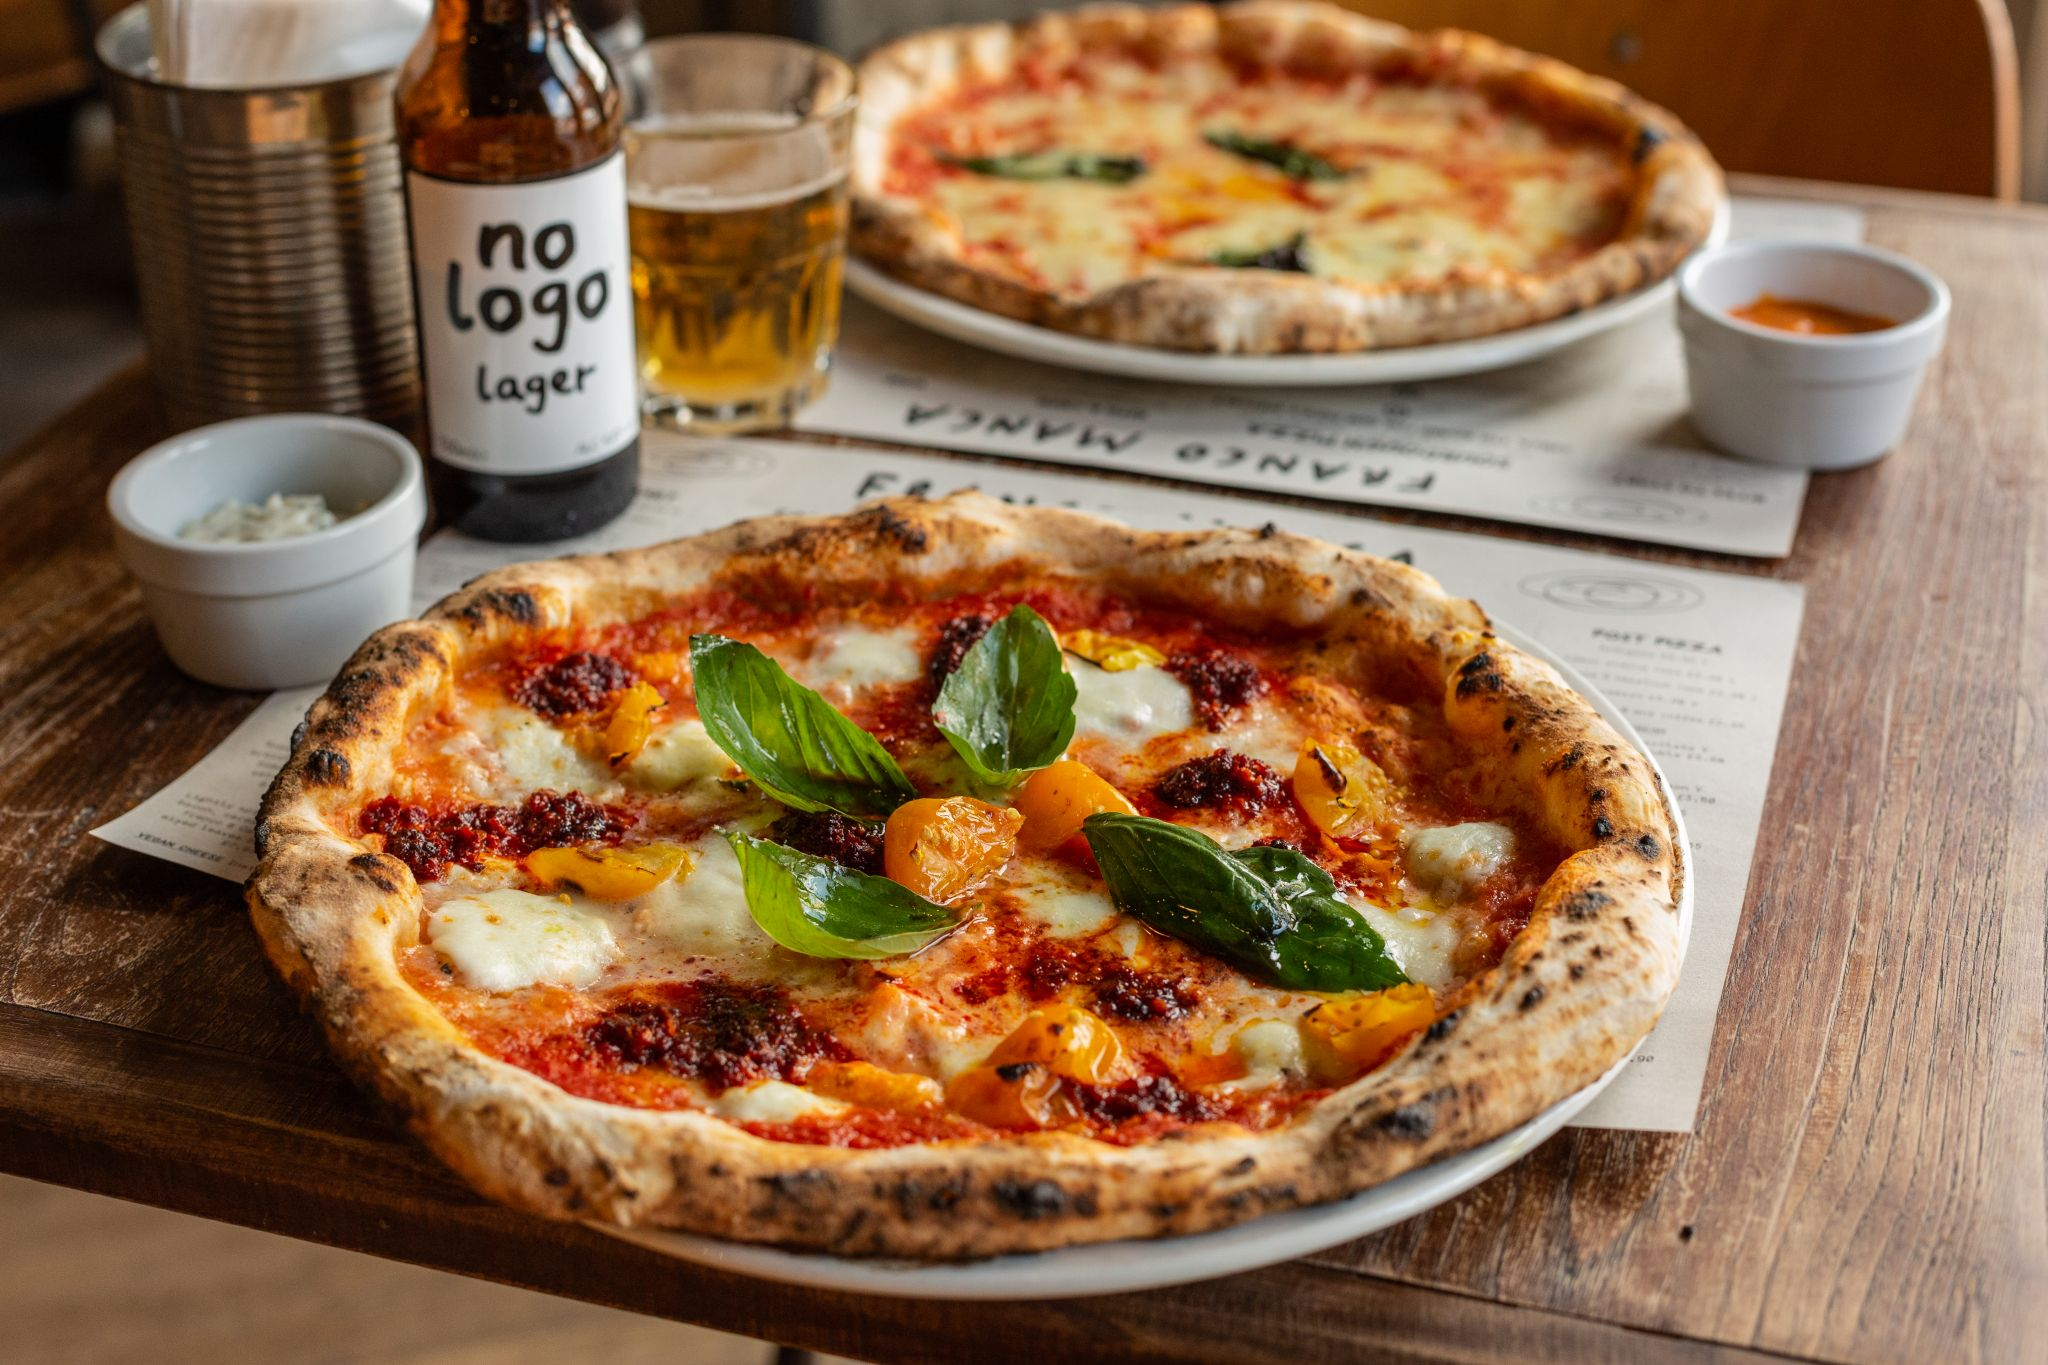 pizza and beer from franco manca